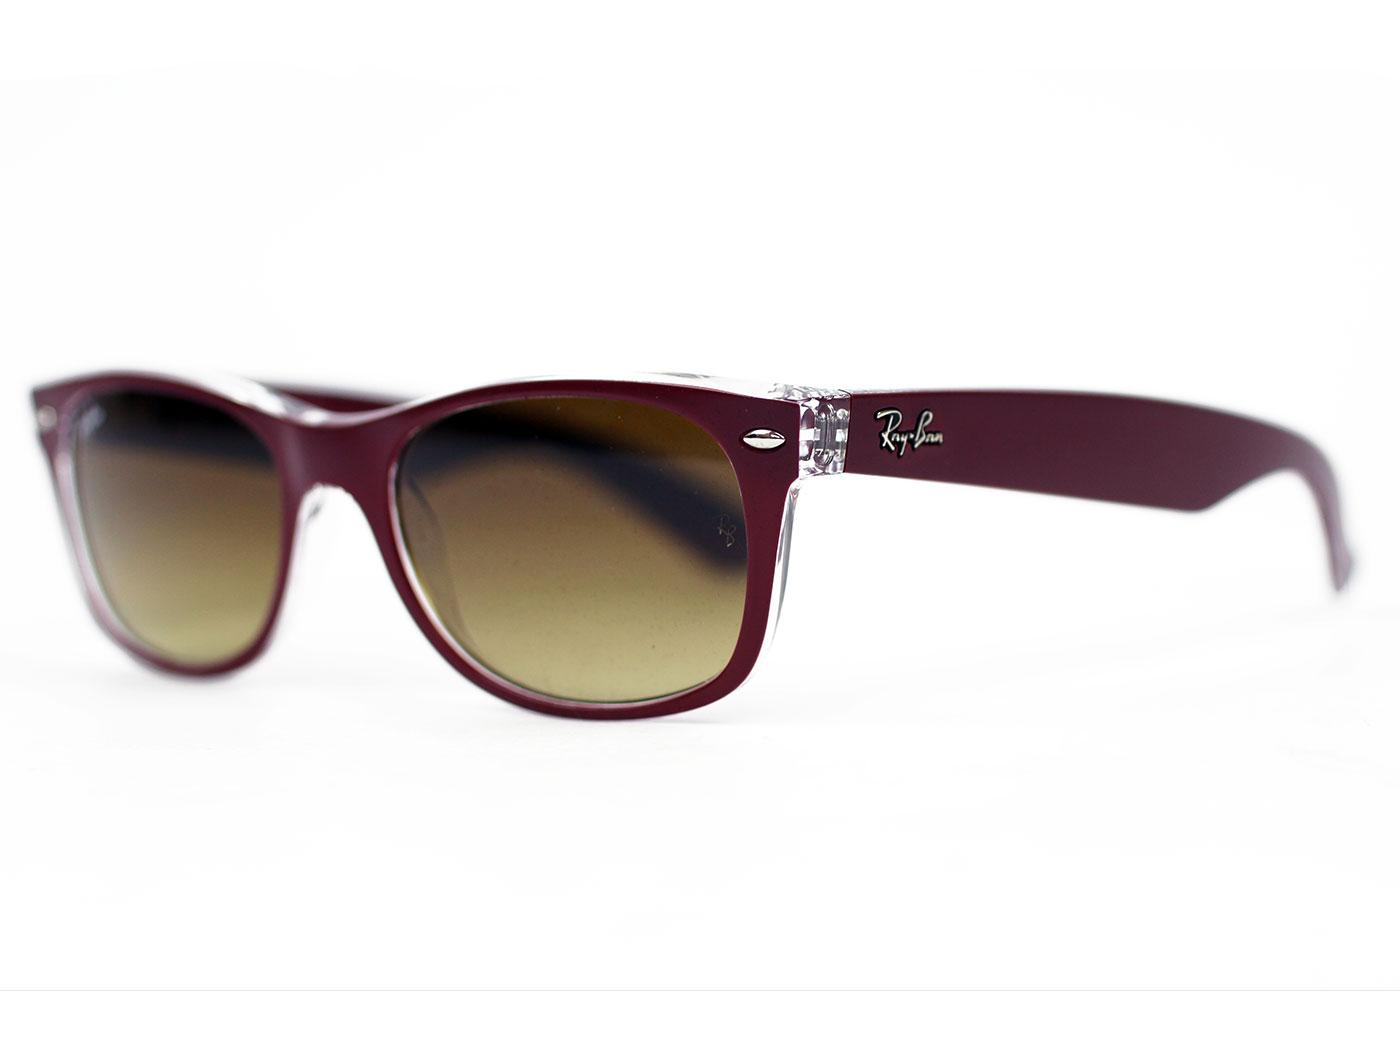 ray ban retro mod small frame new wayfarer sunglasses plum. Black Bedroom Furniture Sets. Home Design Ideas